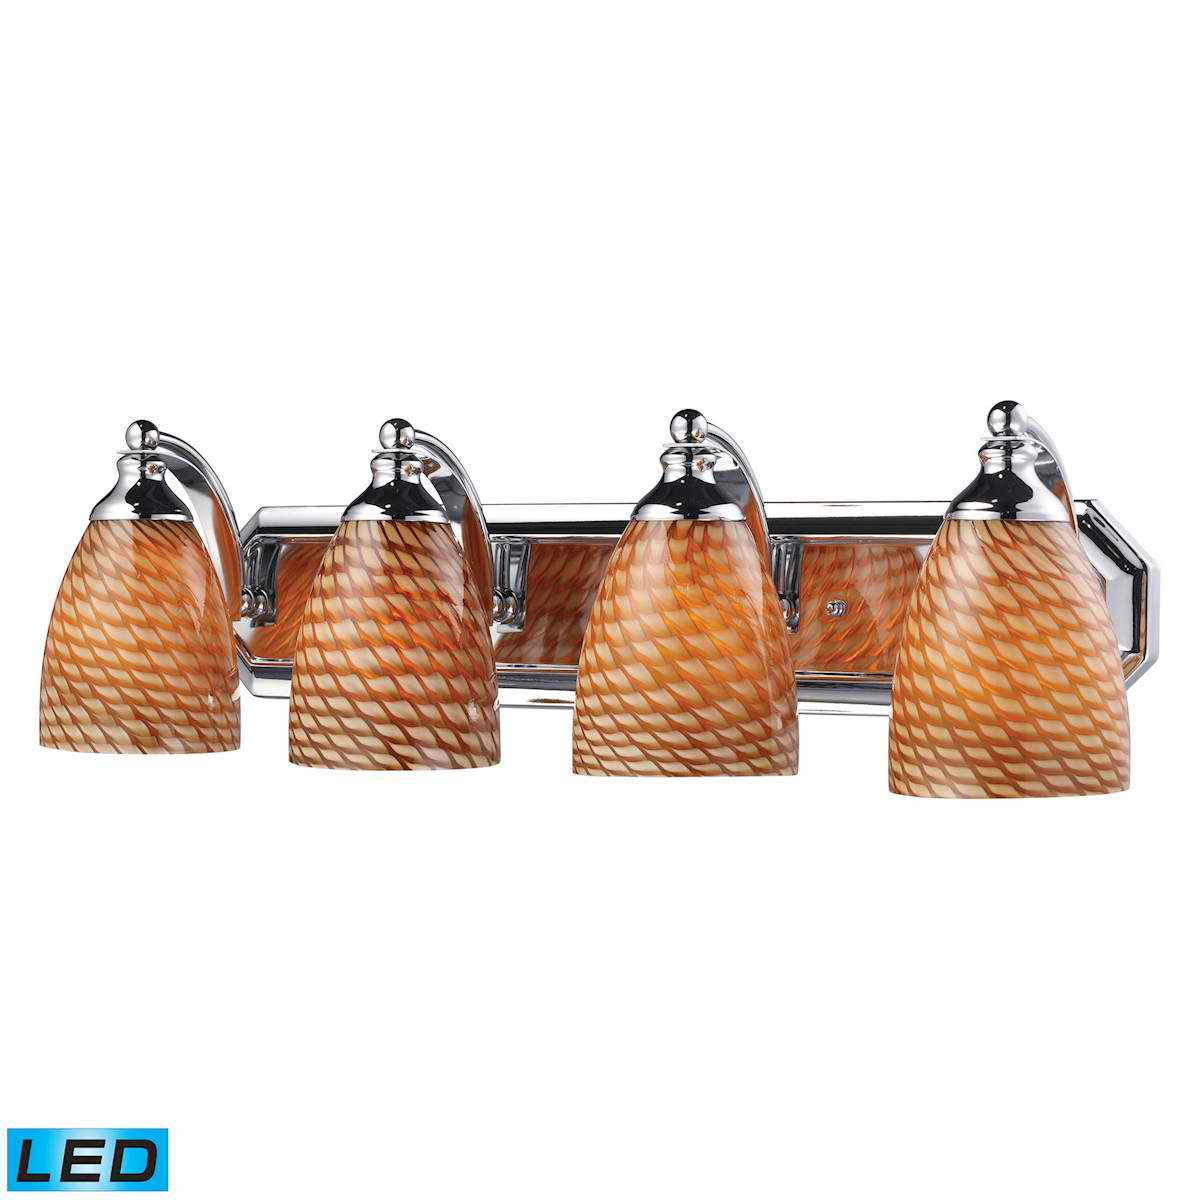 4 Light Vanity in Polished Chrome and Coco Glass - LED, 800 Lumens (3200 Lumens Total) with Full Scale